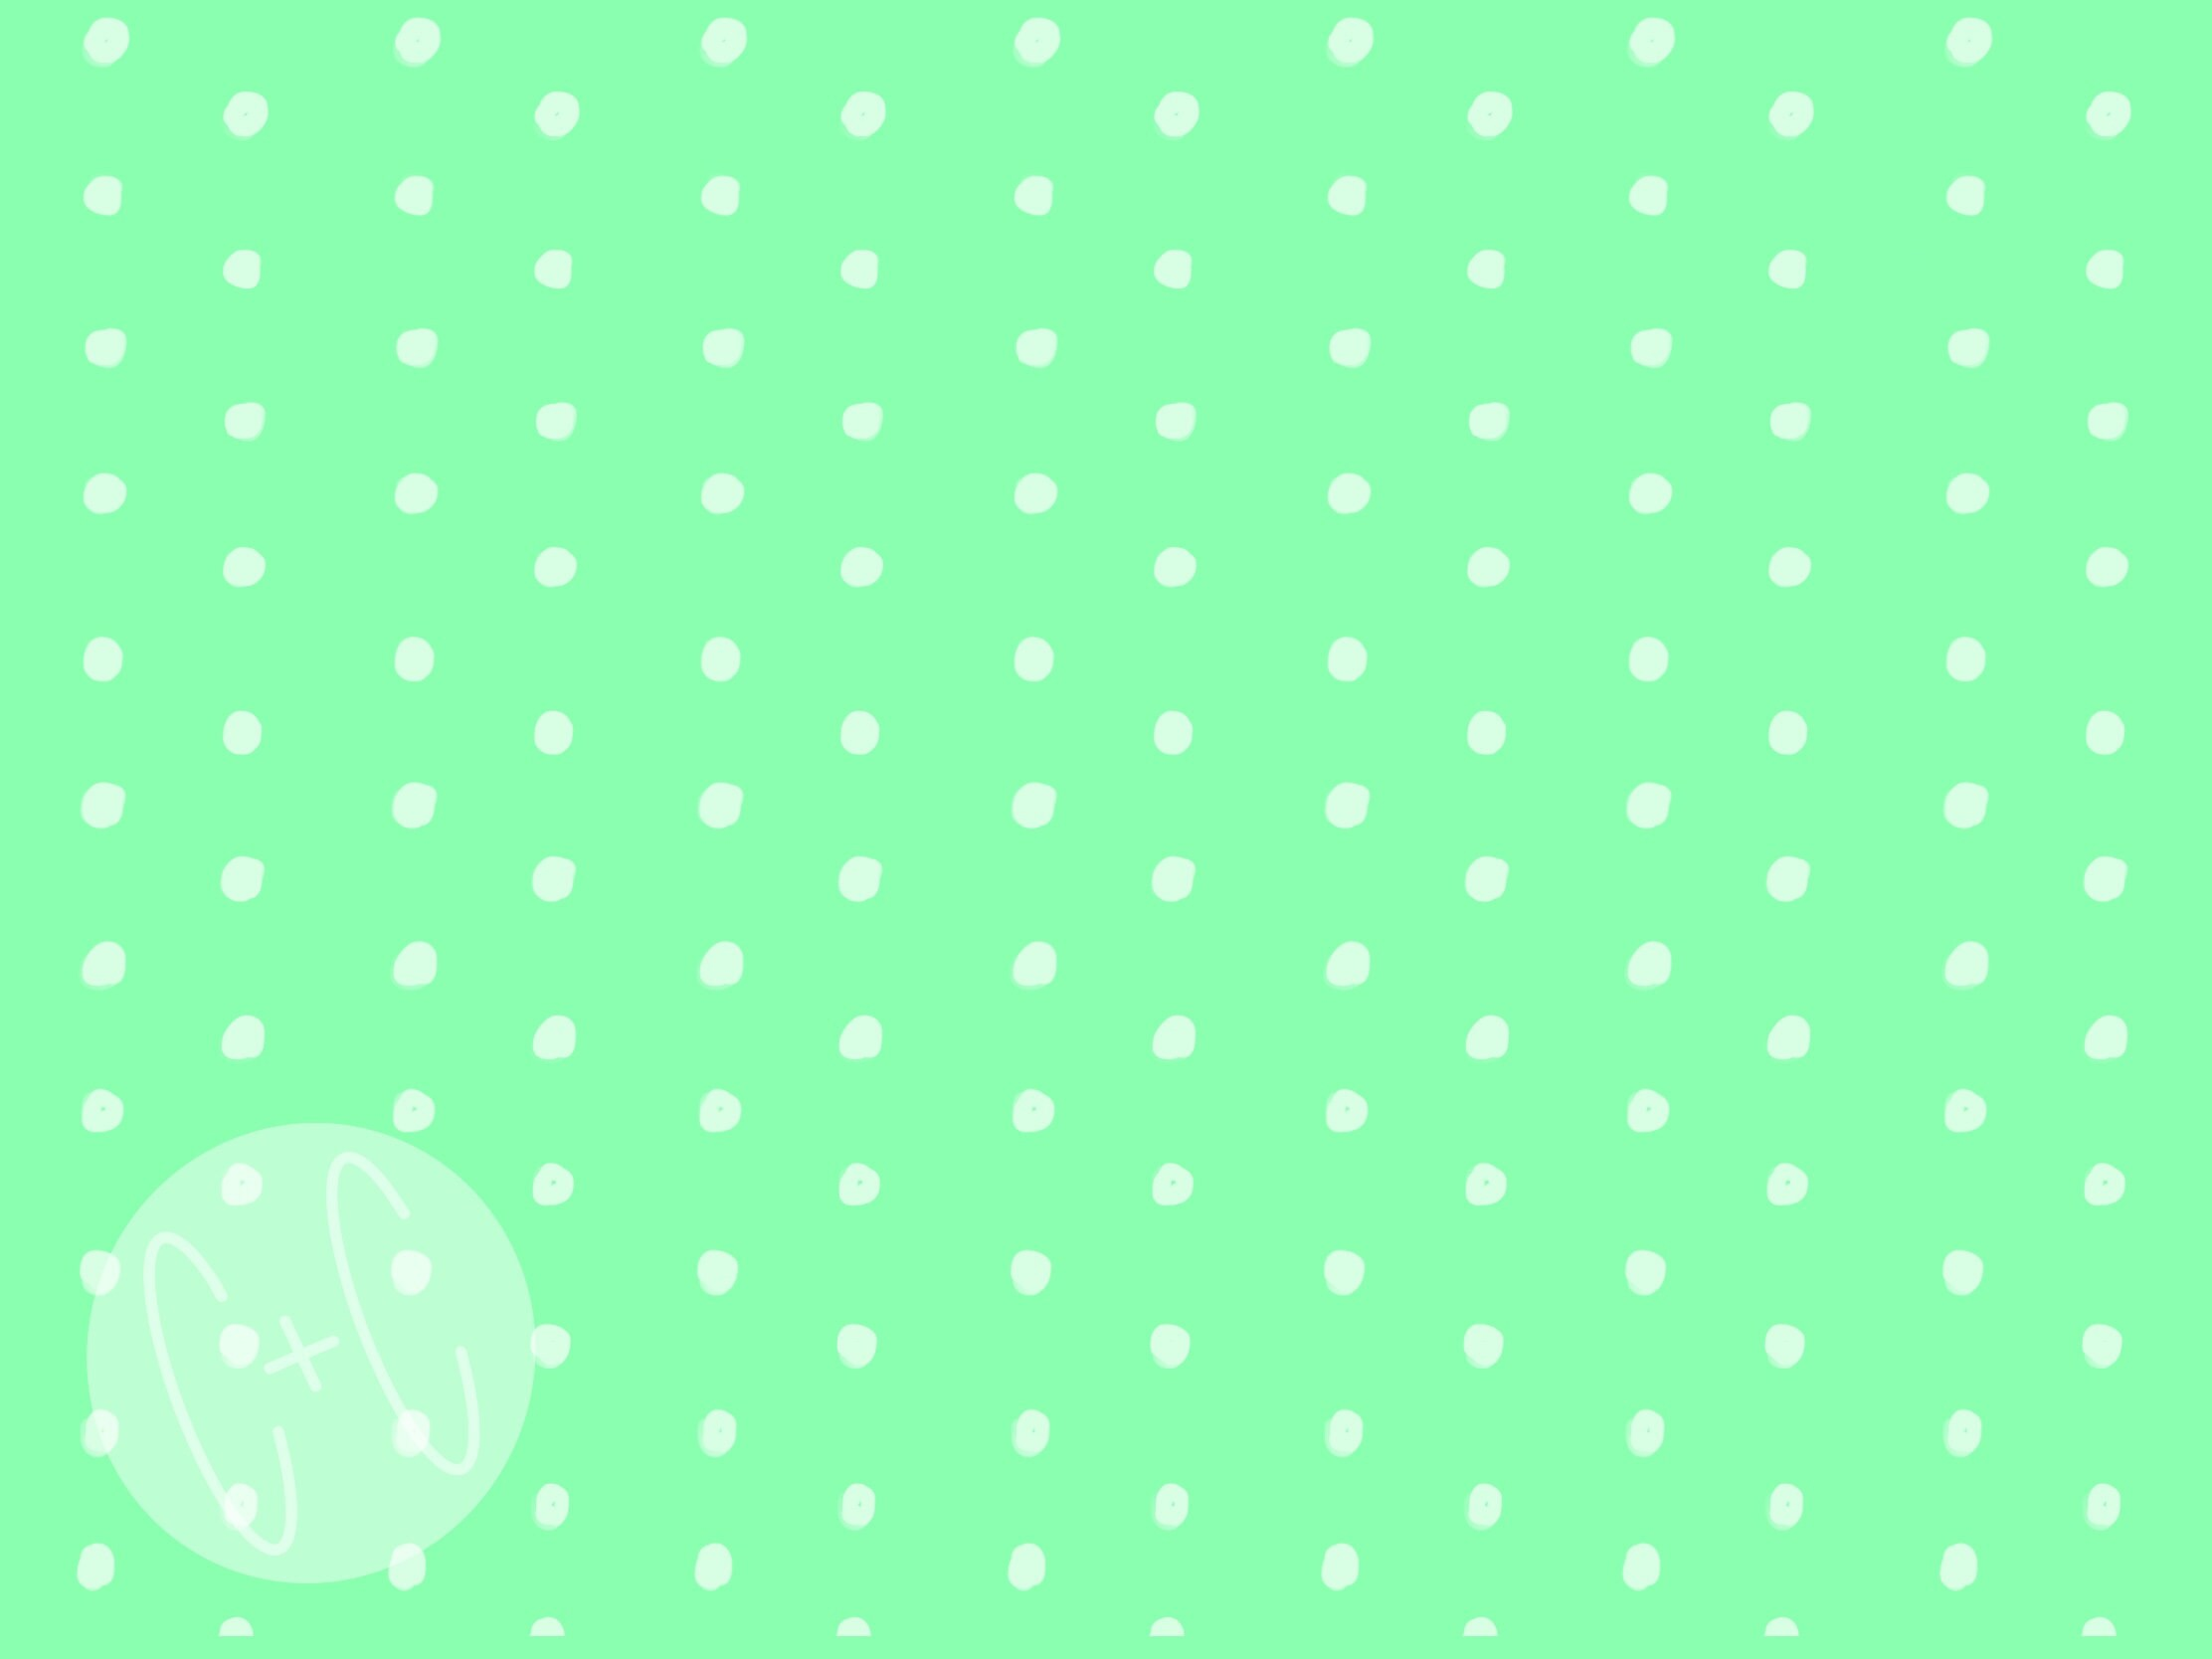 Background Green Dot png clipart digital download